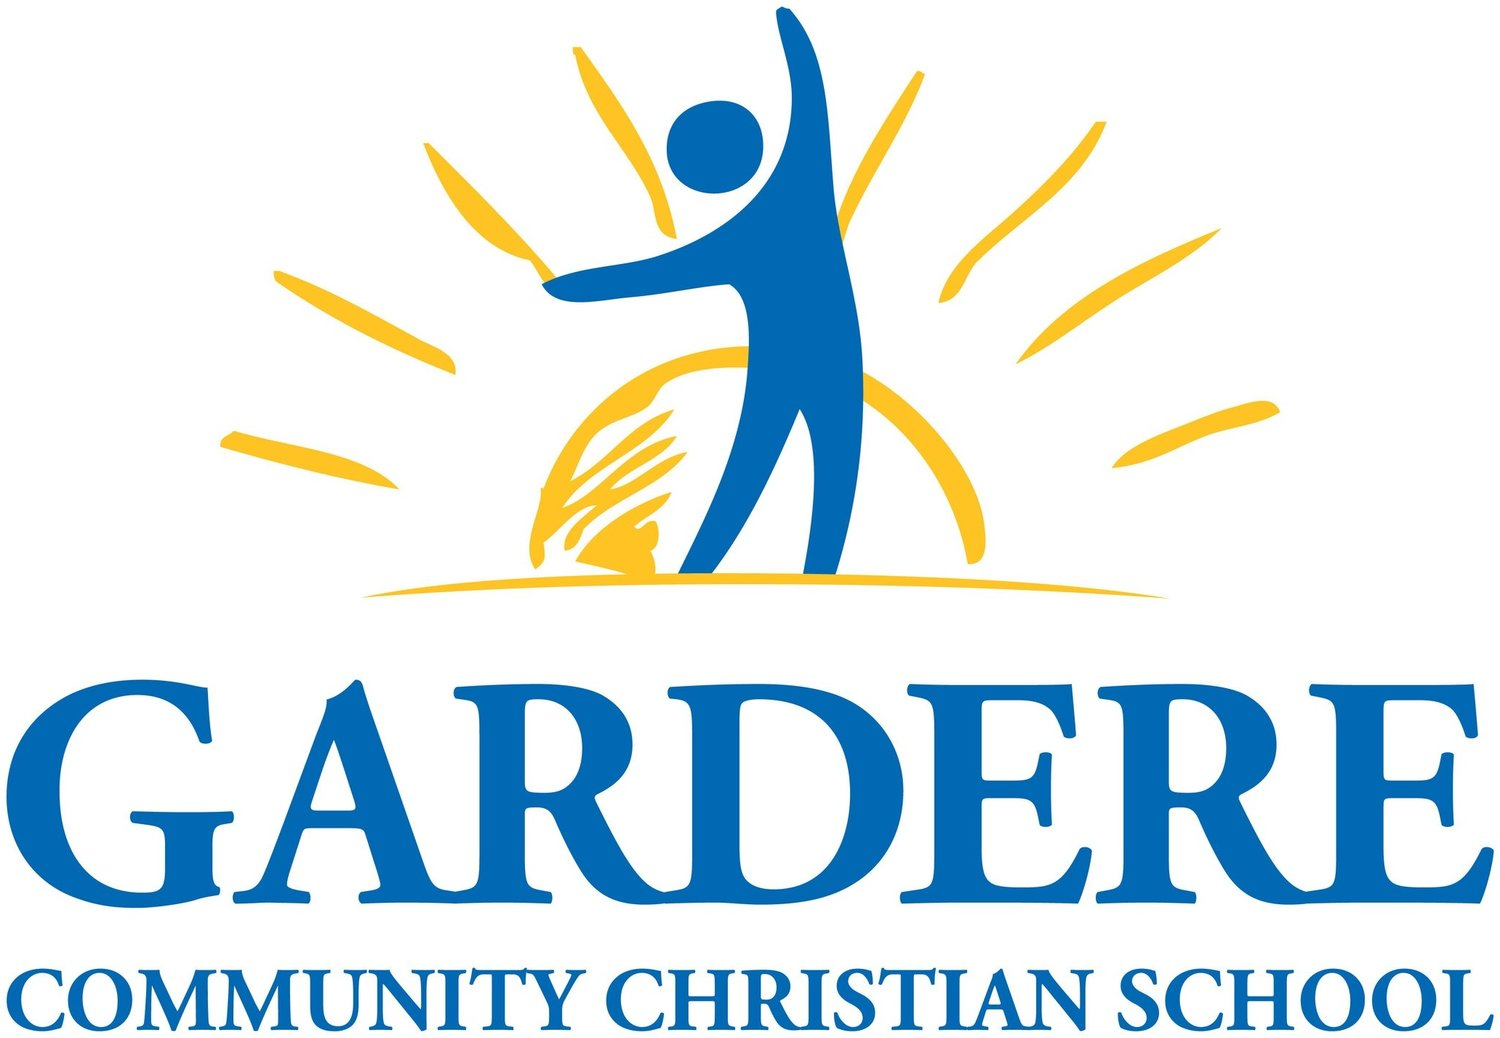 Gardere Community Christian School